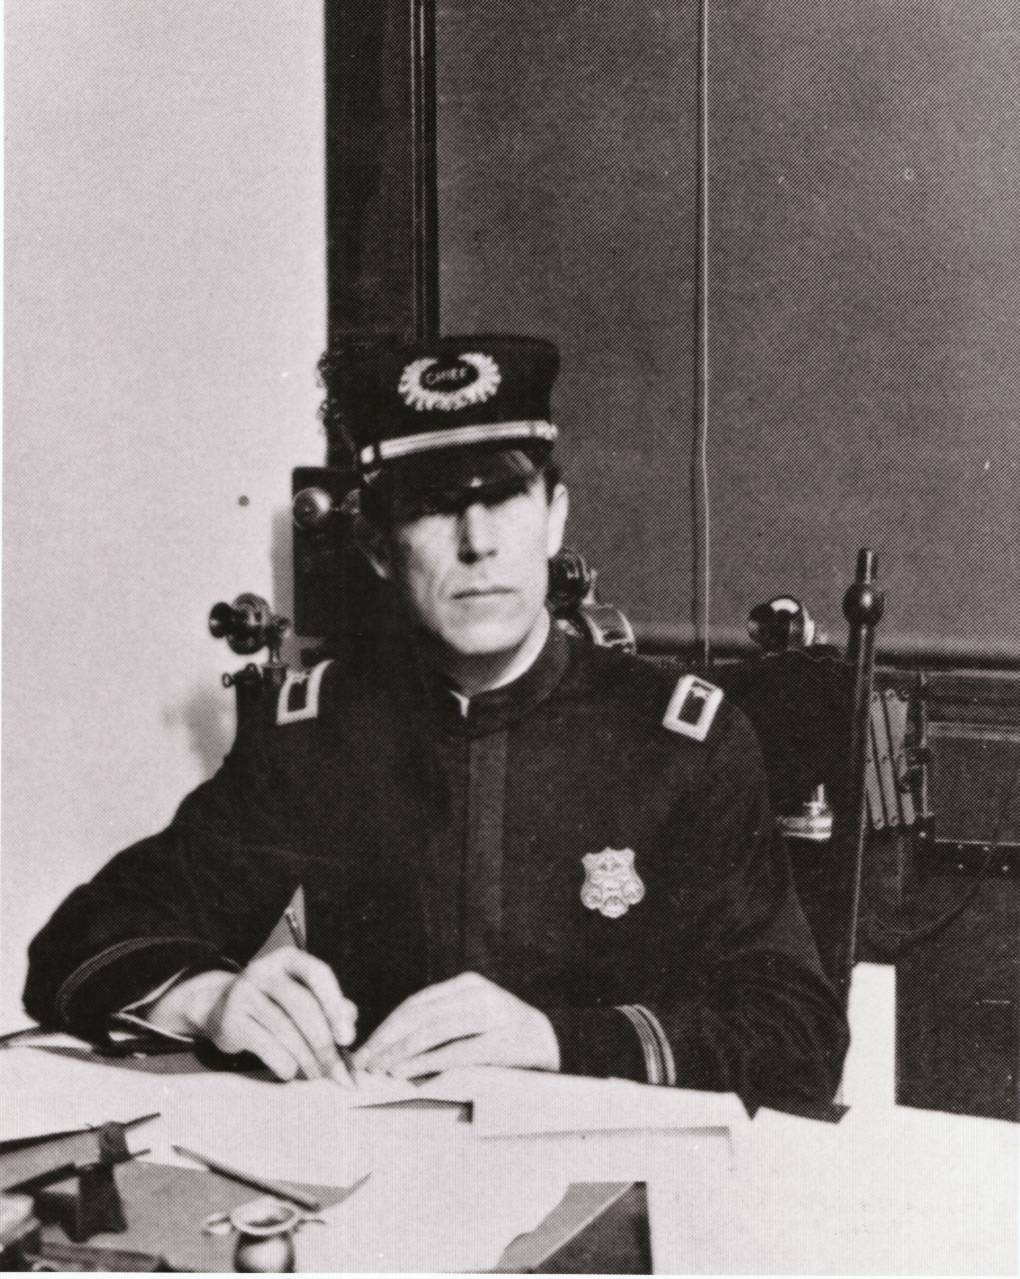 Portrait of August Vollmer sitting at his desk wearing a dark uniform and his chief's hat.